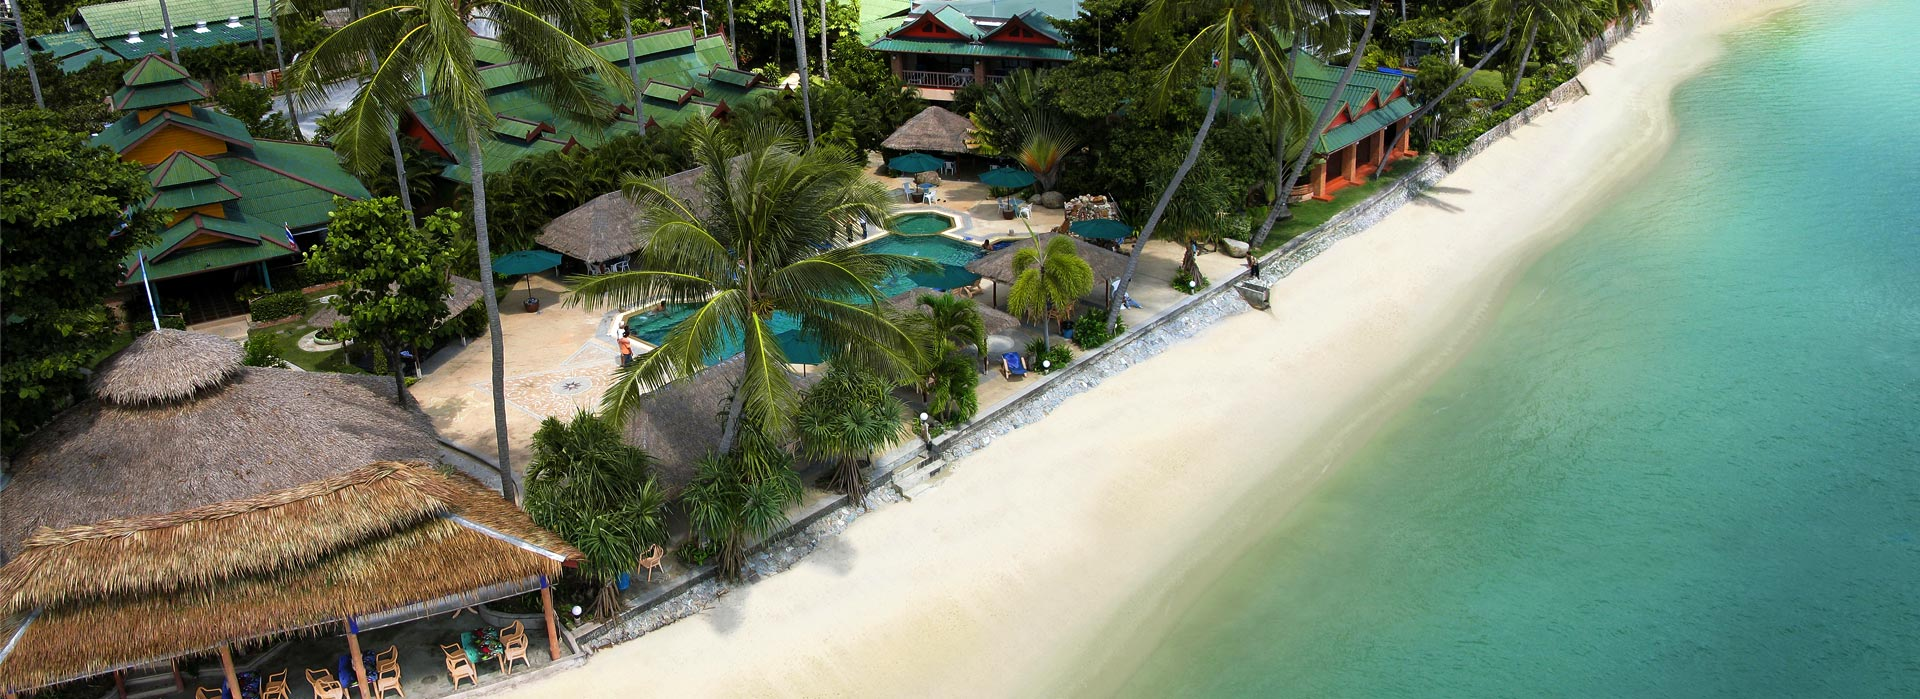 Friendship Beach Resort - Overview